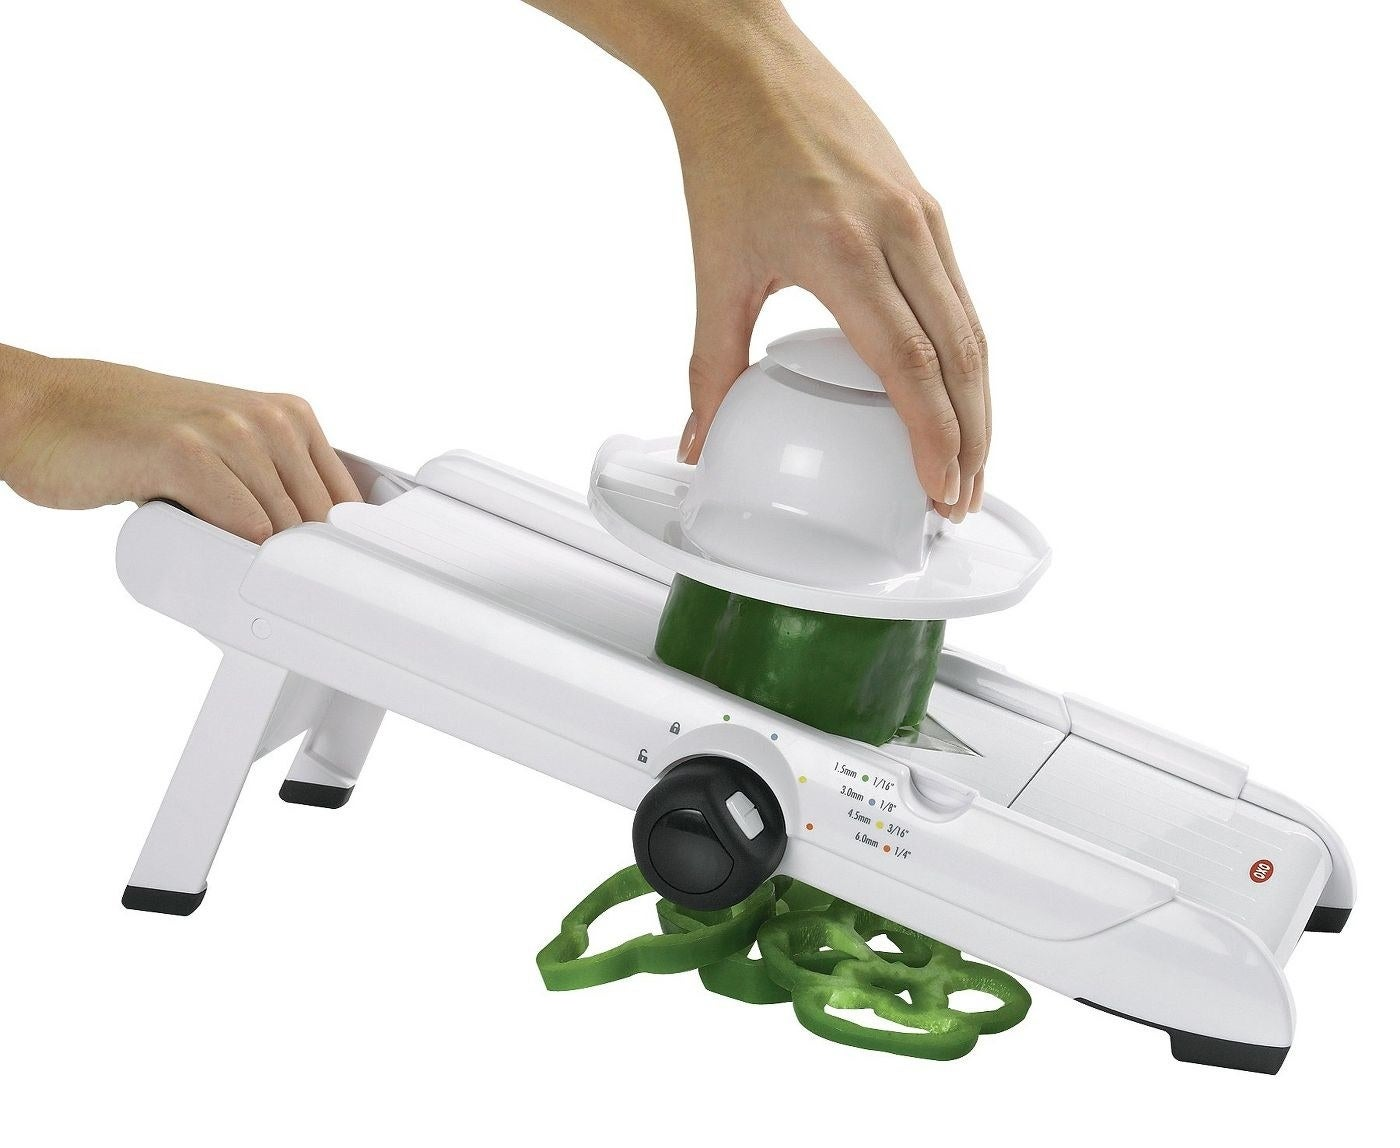 person using mandoline slicer to create thin, even slices of green pepper